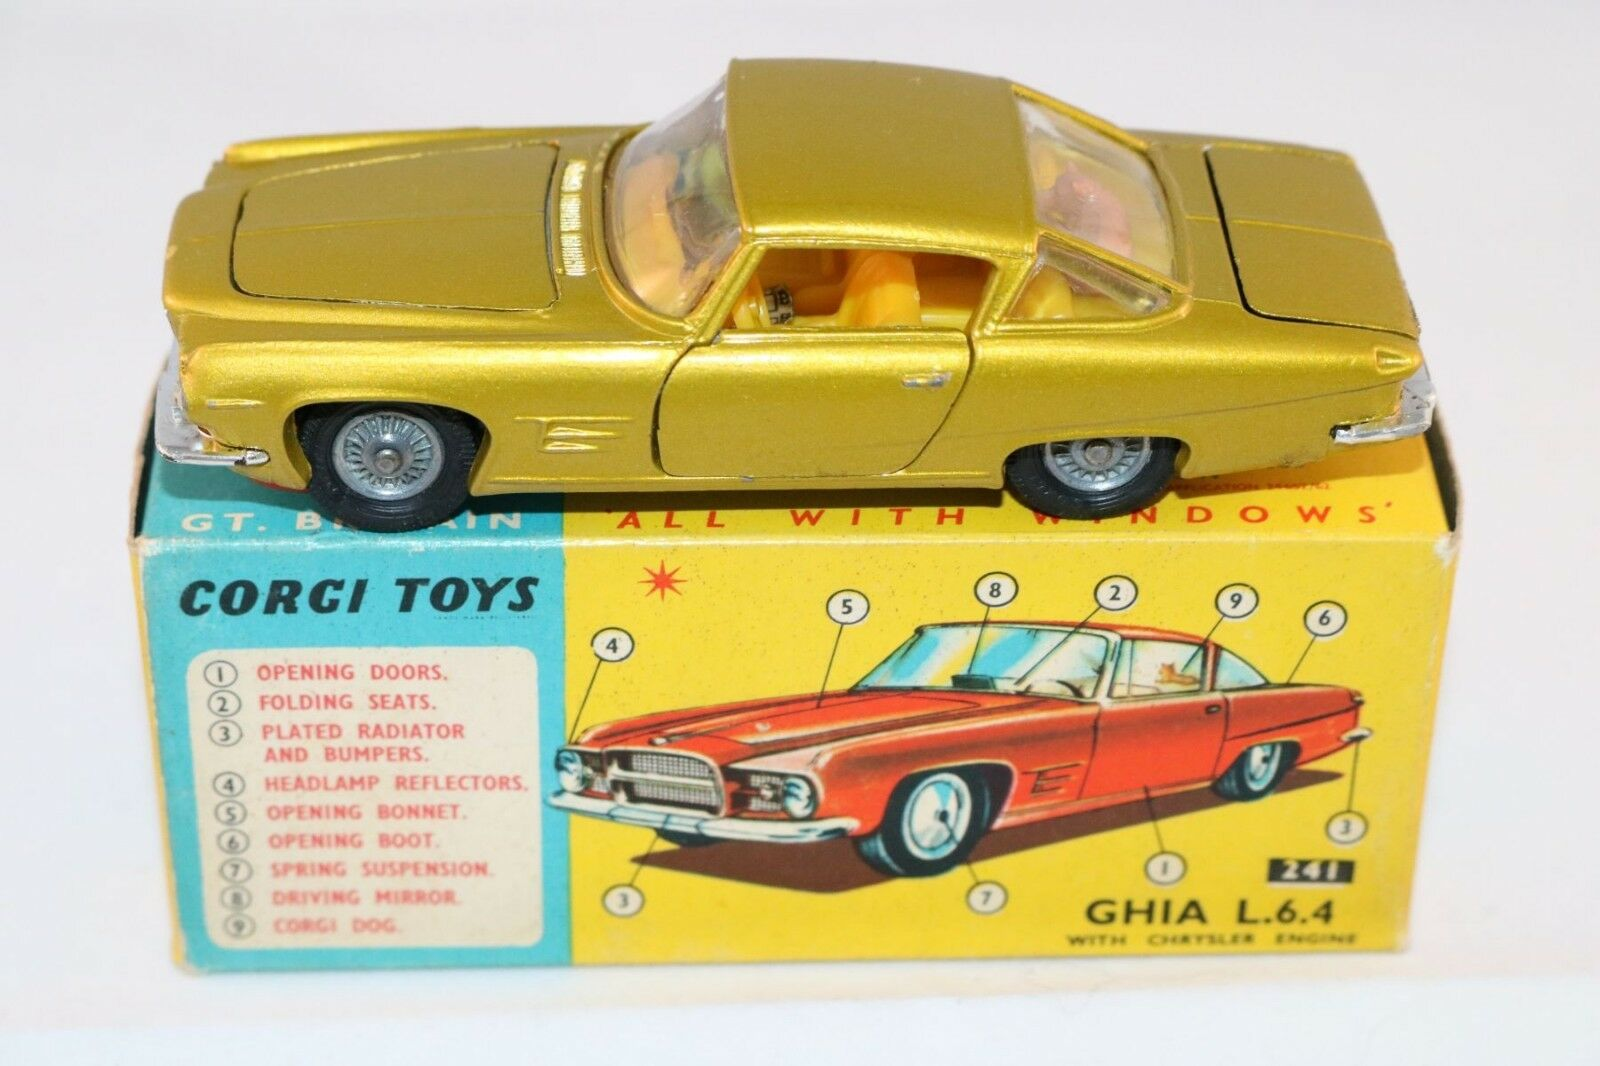 Corgi Toys 241 Ghia Ghia L.6.4. Lime gold issue with good suspension 99% mint in box